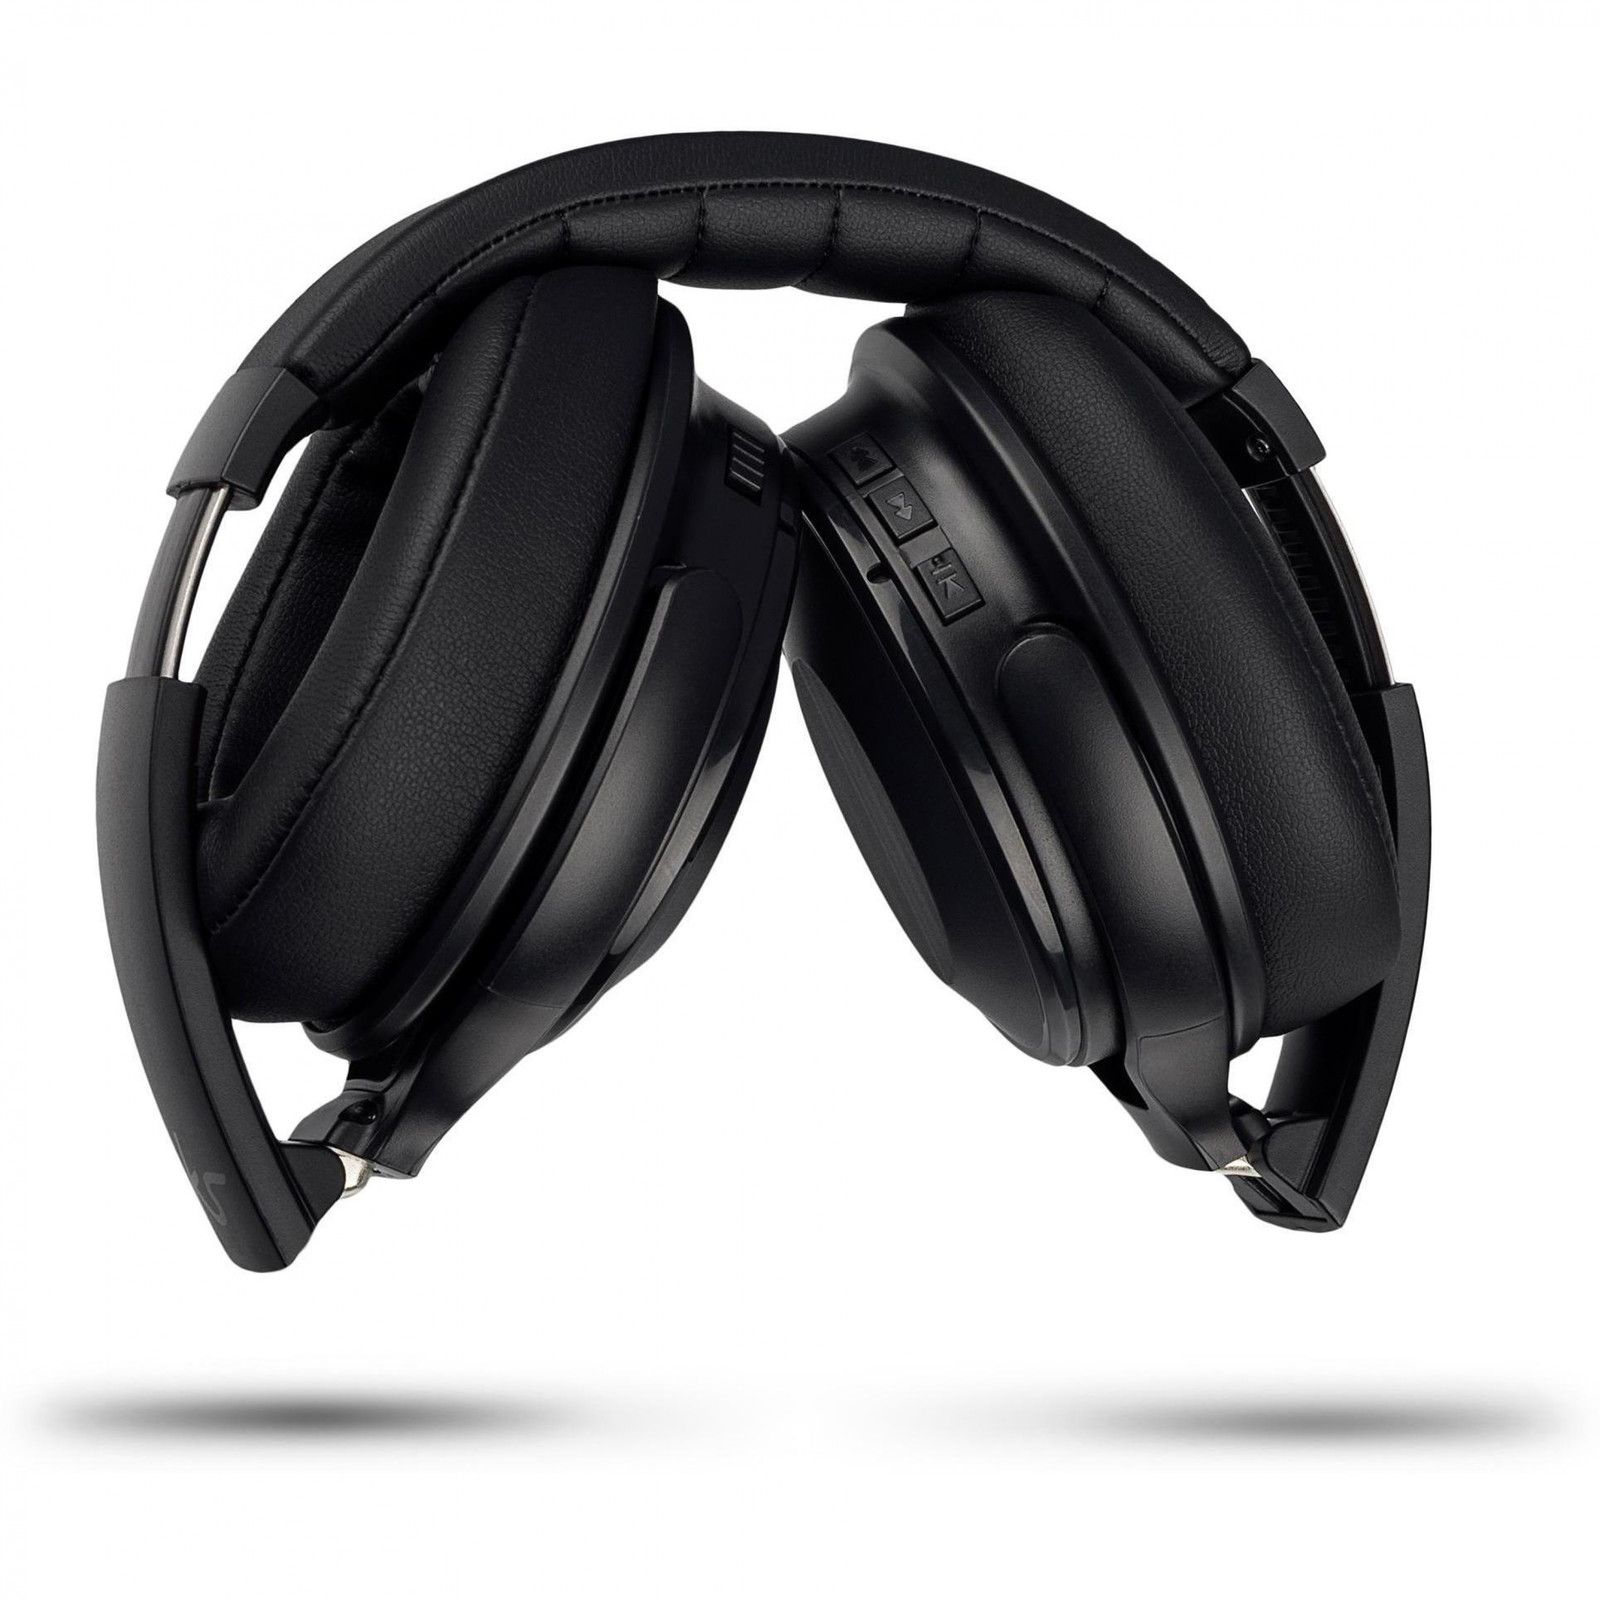 Kitsound Immerse Headphones